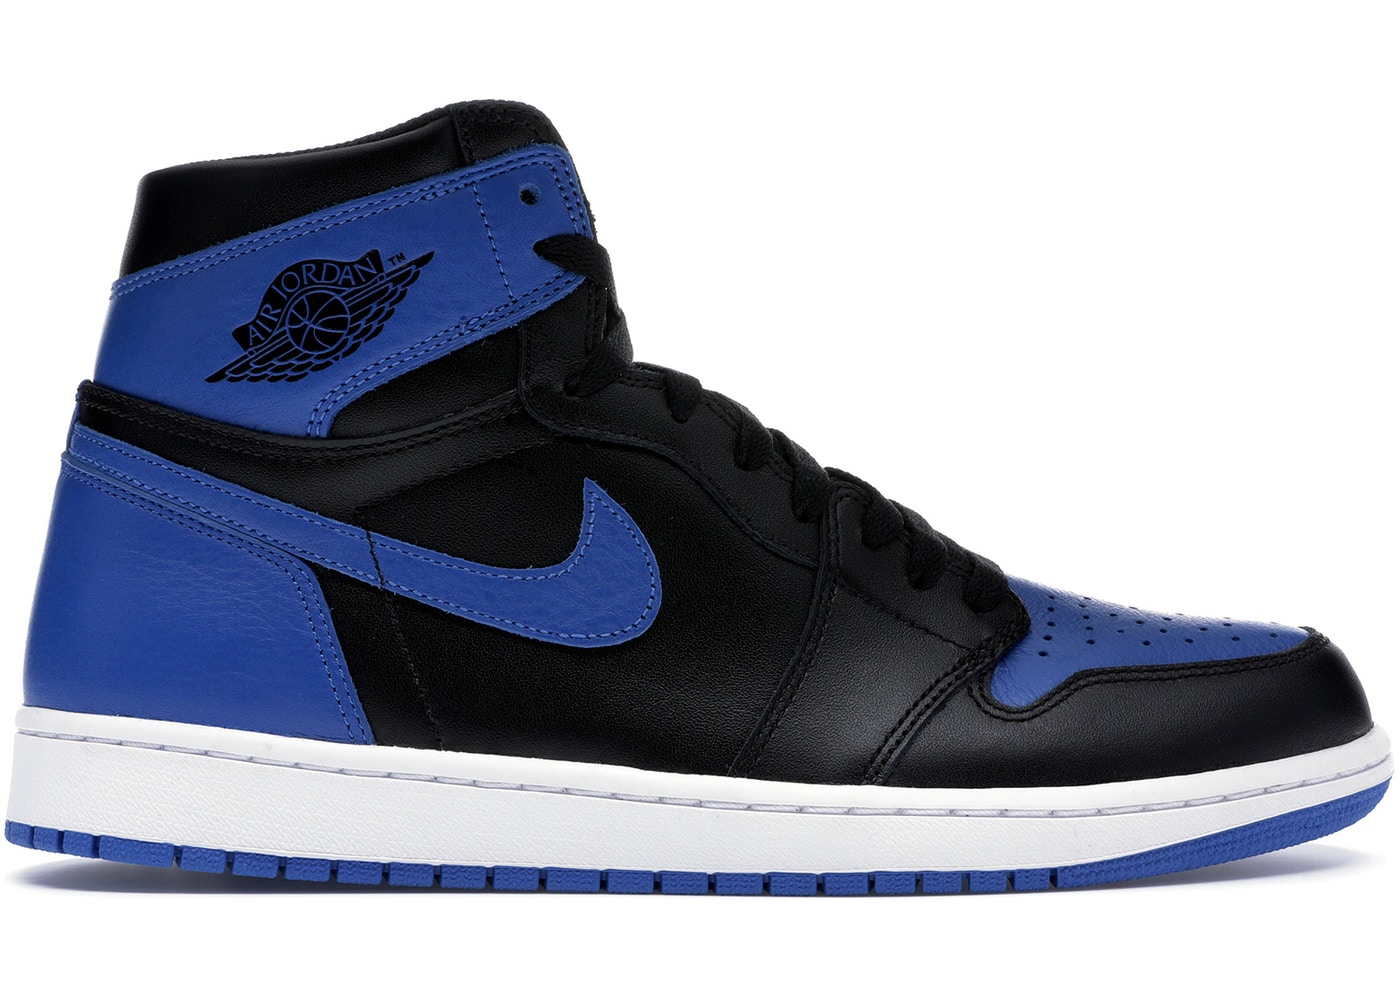 buy online d868c 4d557 Buy Air Jordan 1 Shoes   Deadstock Sneakers